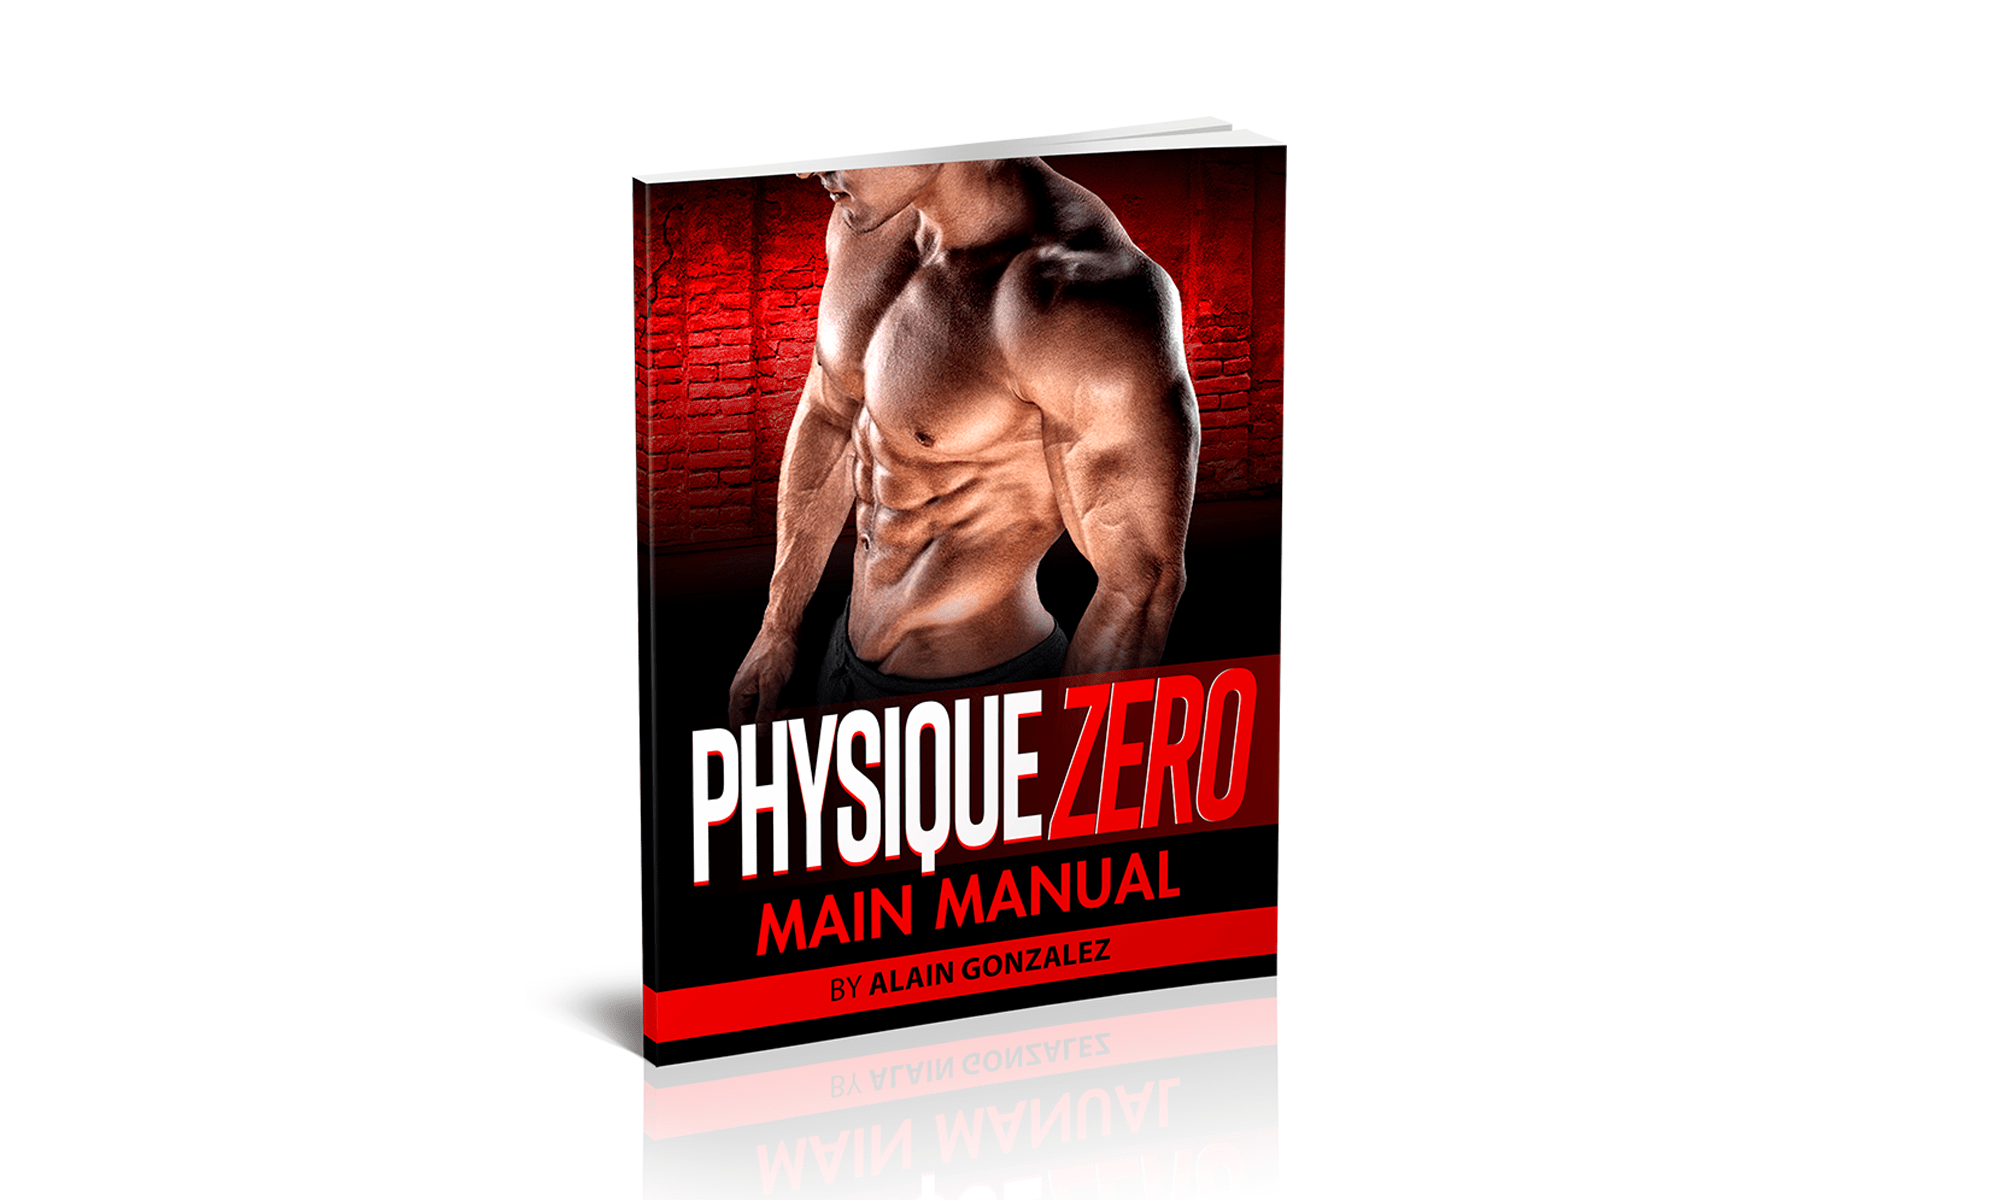 Physique Zero review